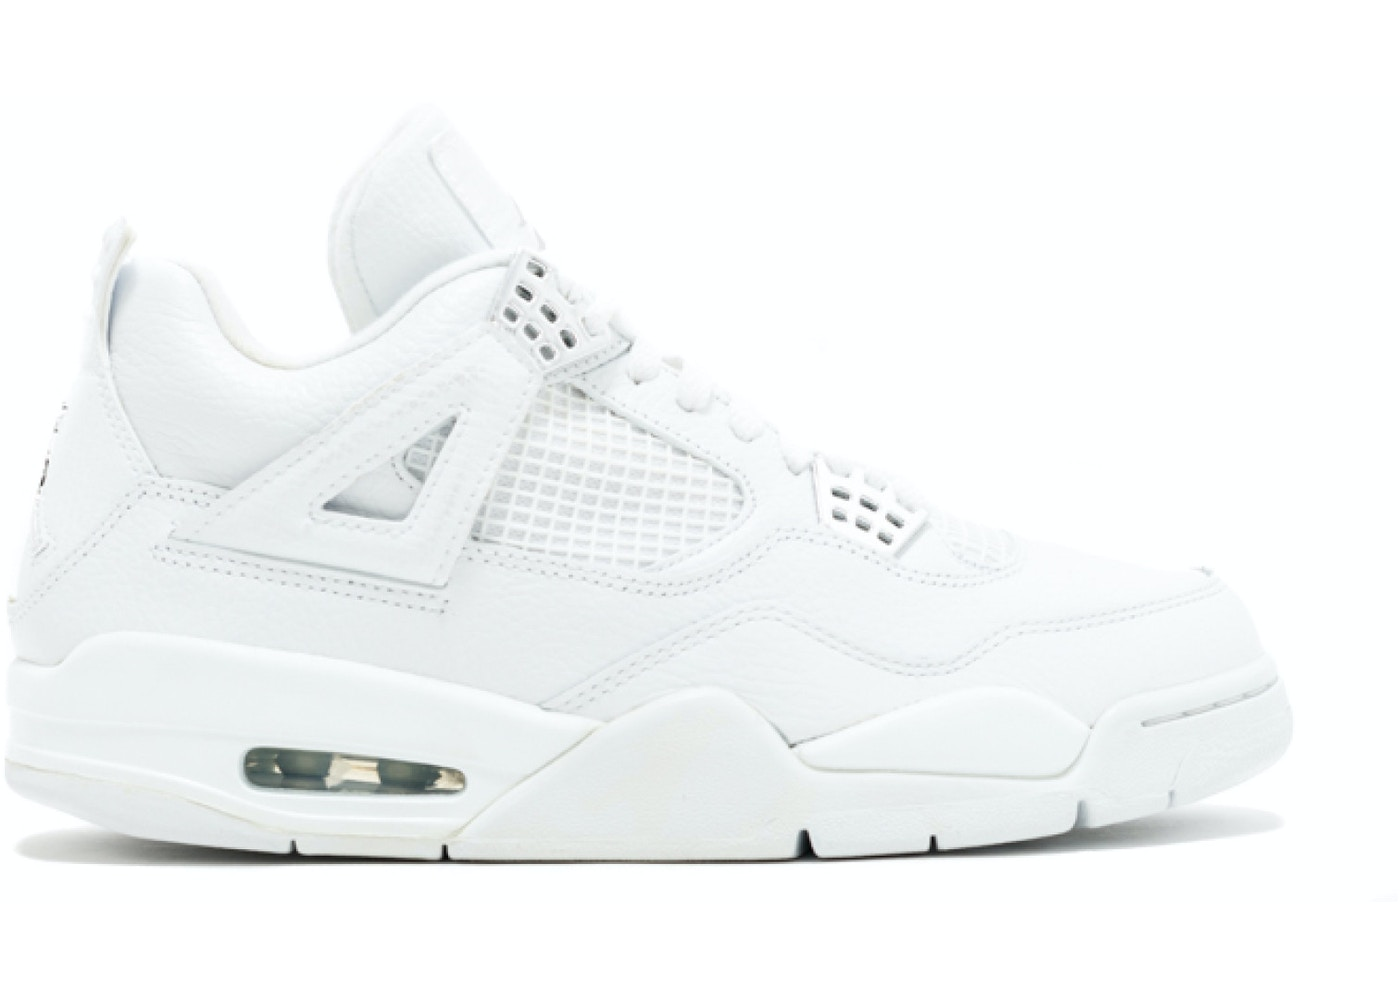 factory authentic 6fe37 62f31 Jordan 4 Retro Pure Money (2006)